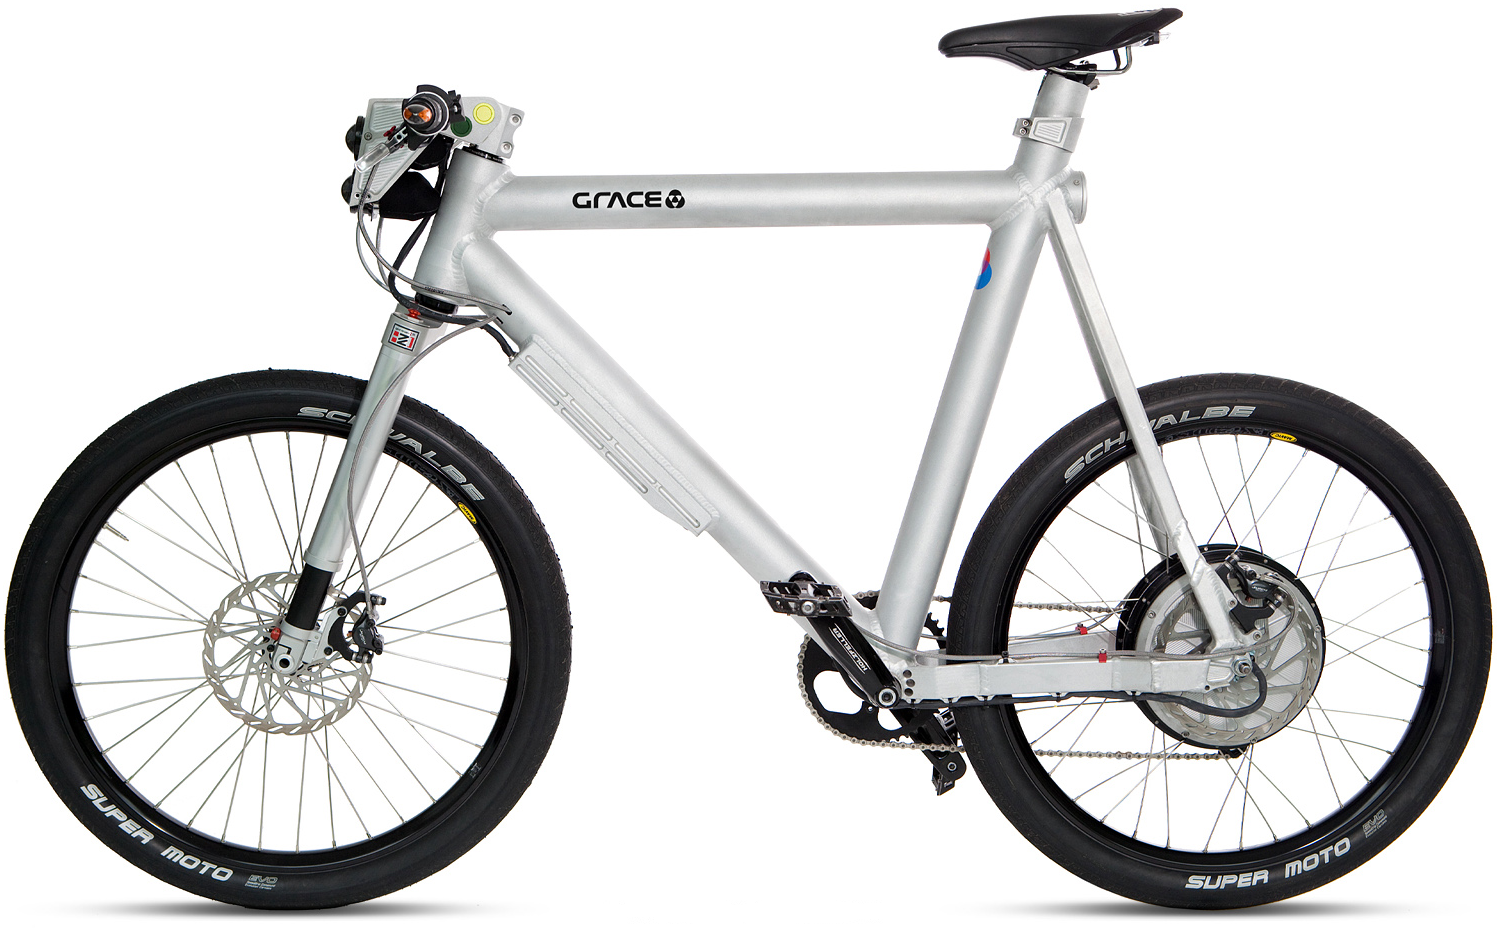 Grace One Mg Electric Bikes